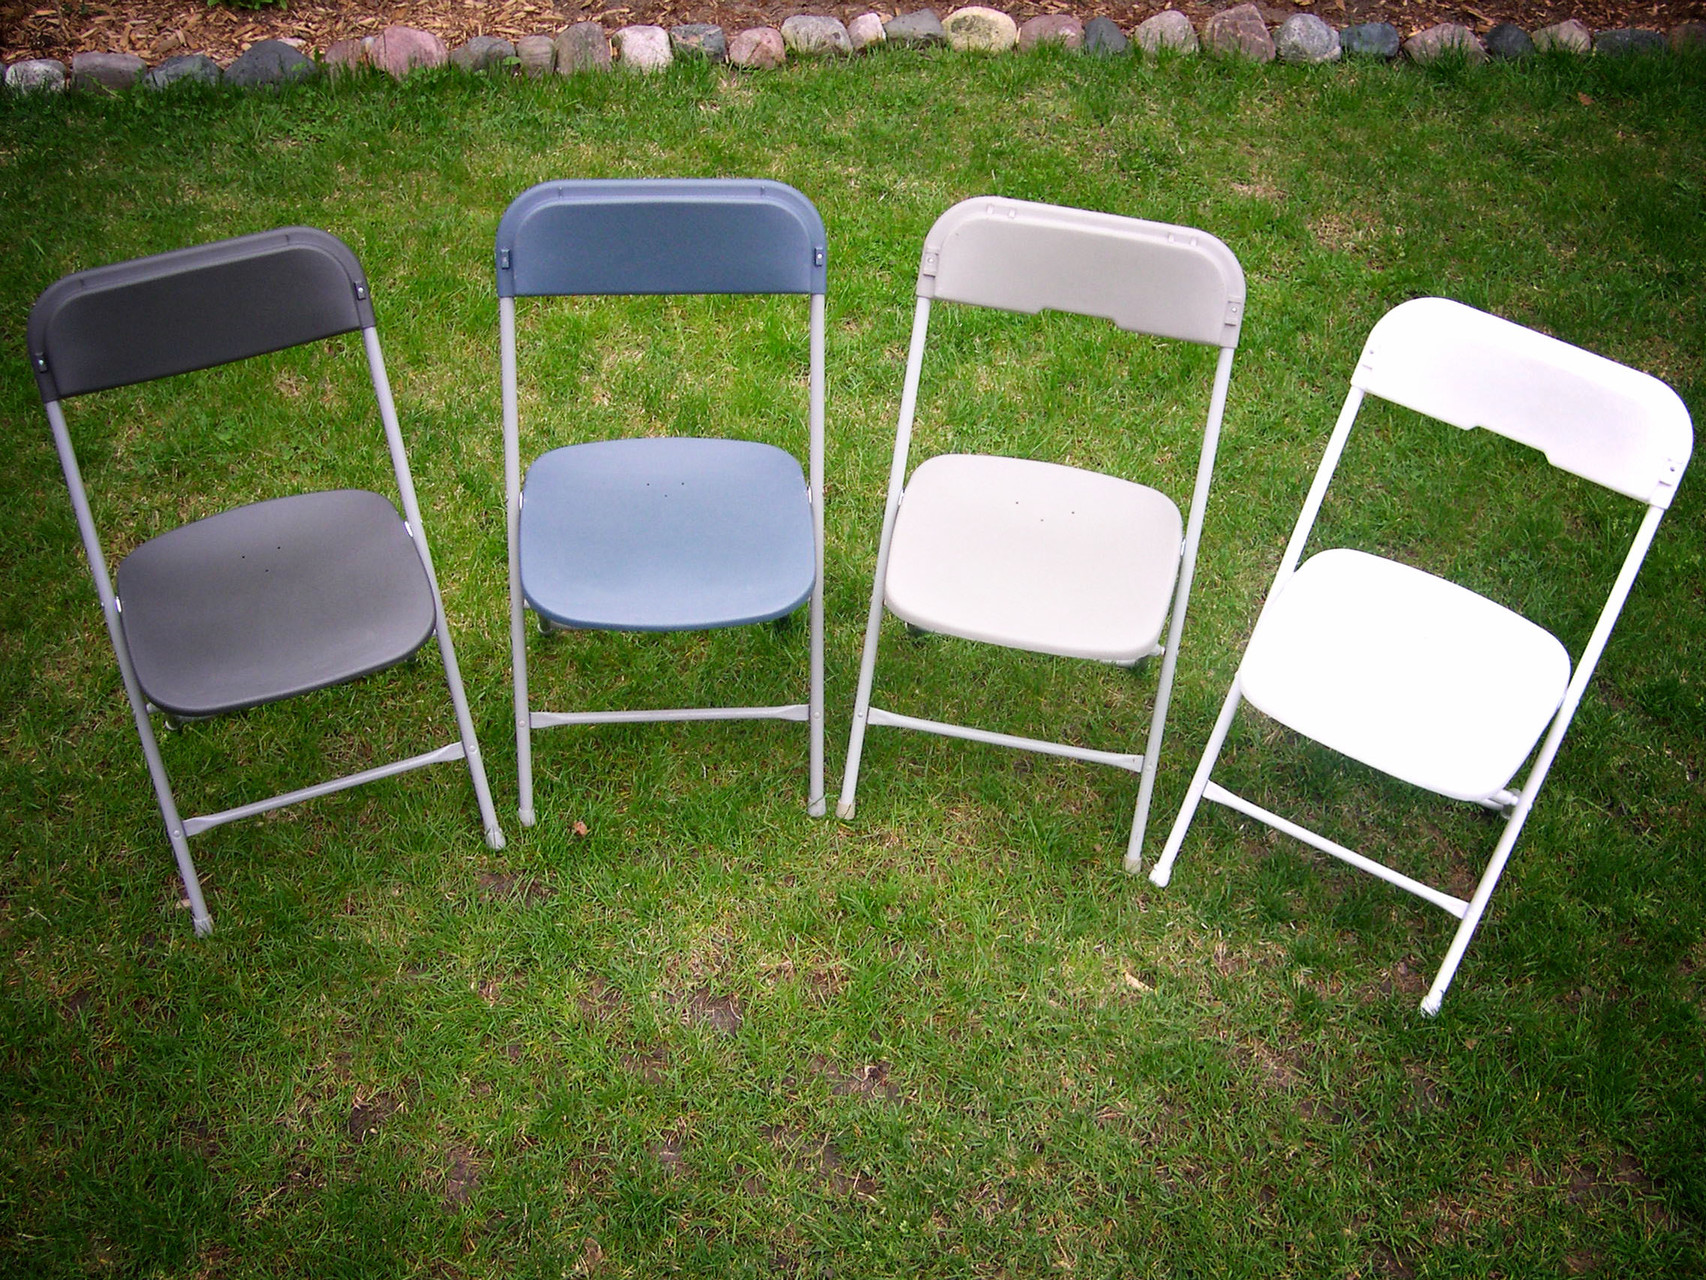 We offer 4 colors of chairs: dark gray, slate blue, light gray and white